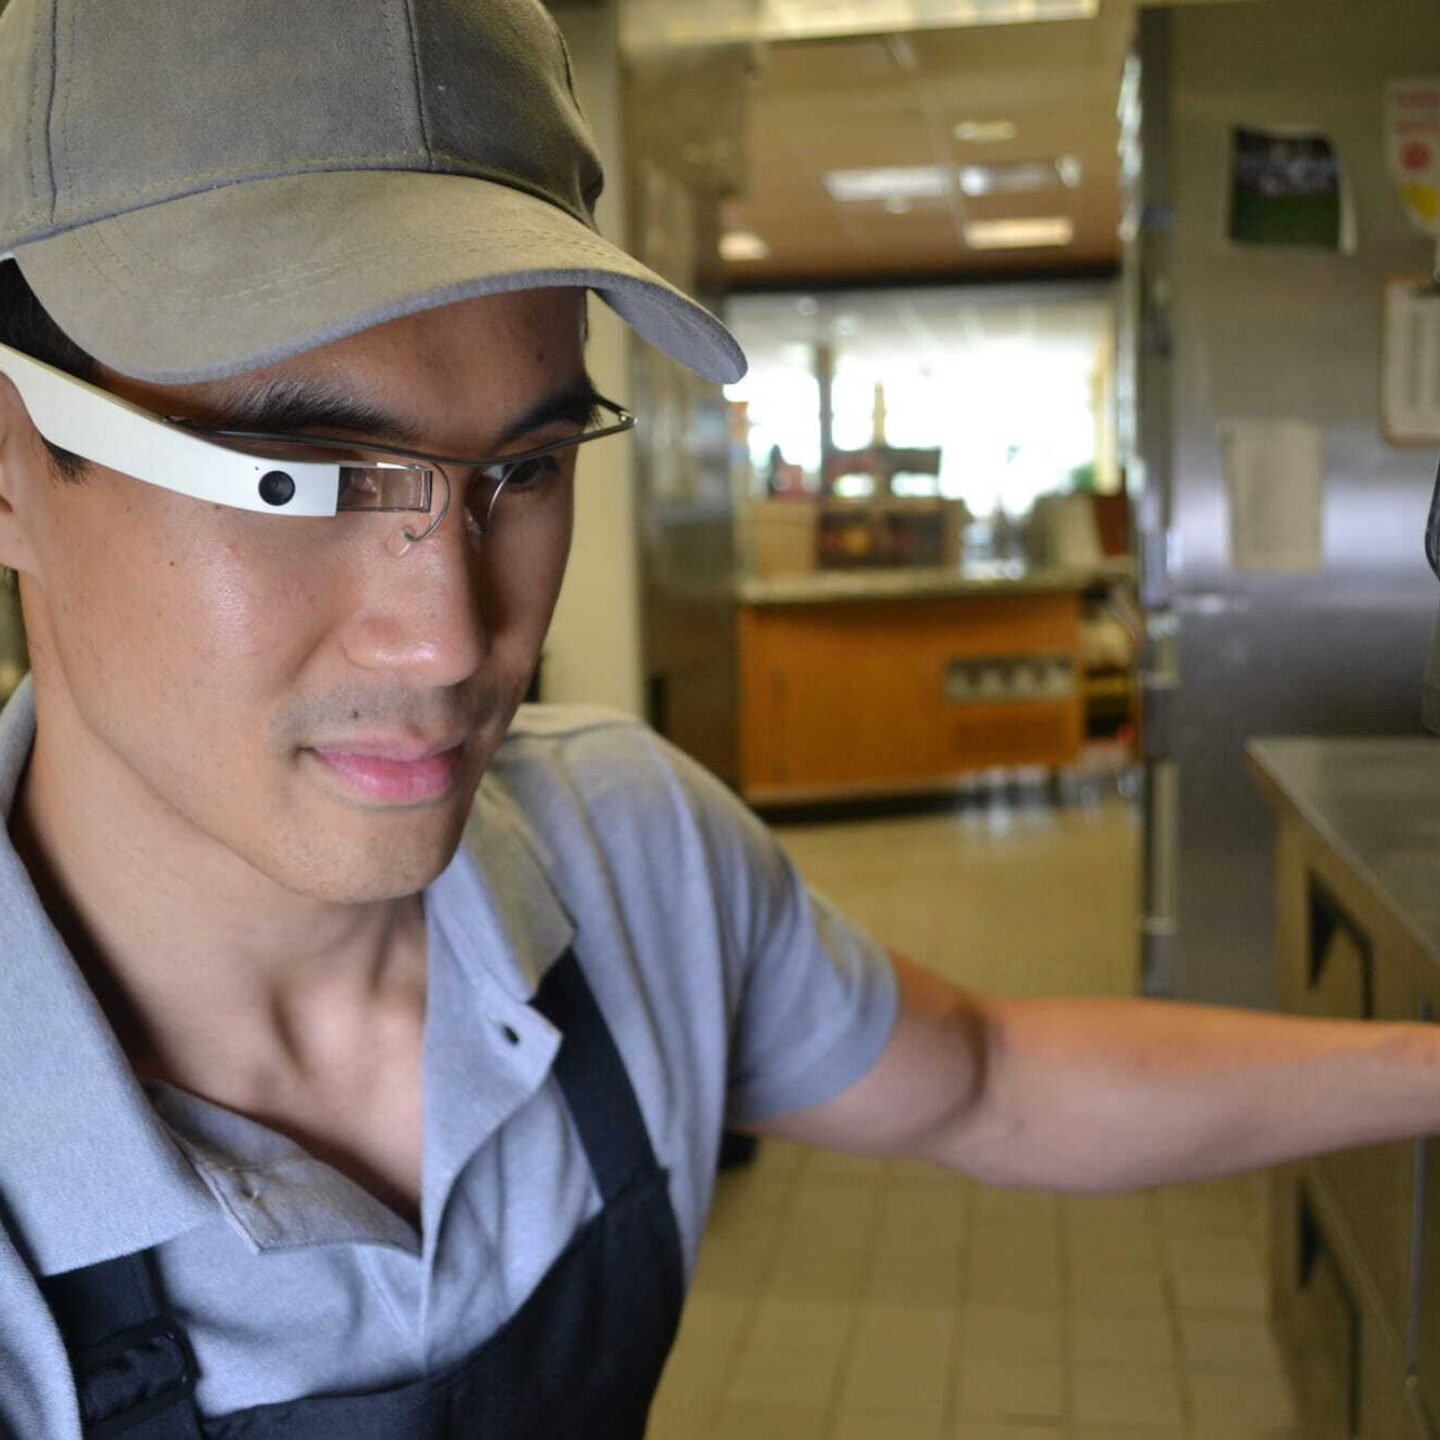 EyeSucceed worker - EyeSucceed Provides Wendy's AI Technology for Food Safety and Supplier Oversight